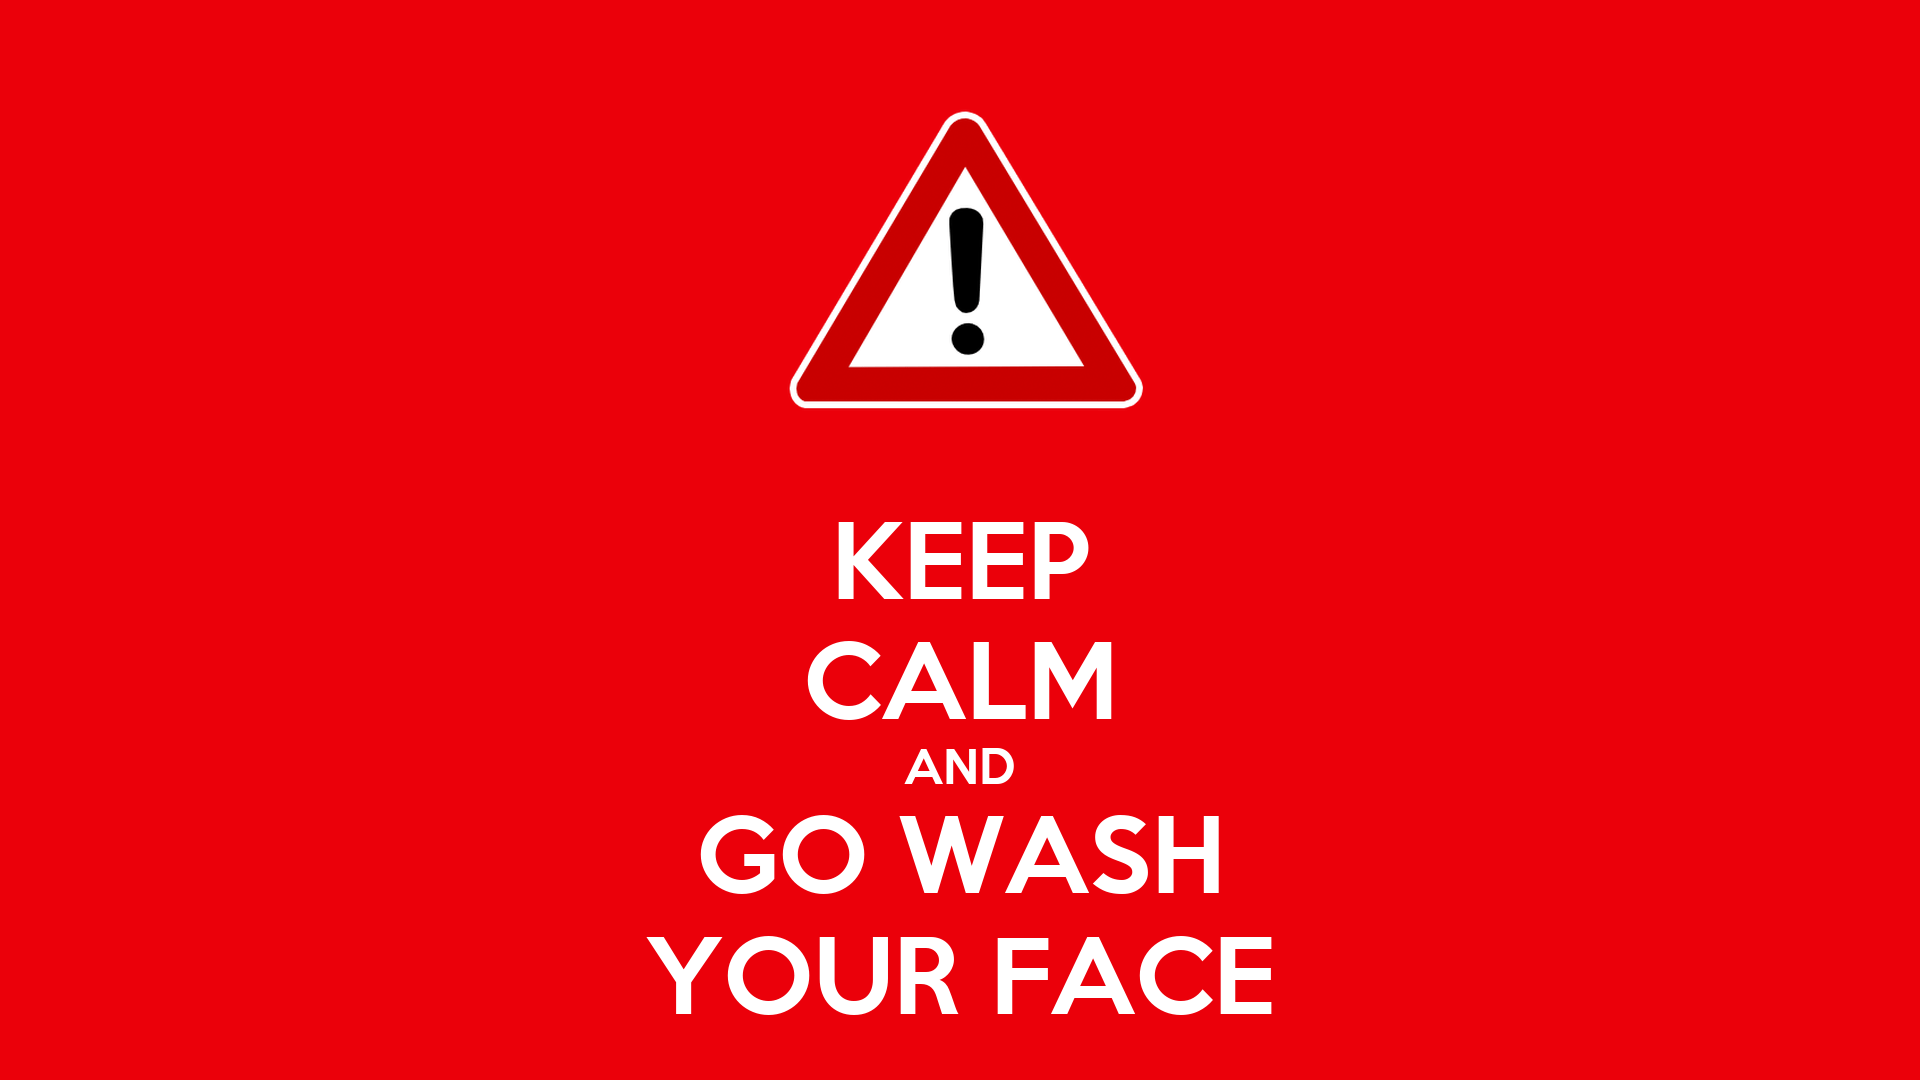 Keep Calm And Go Wash Your Face Poster